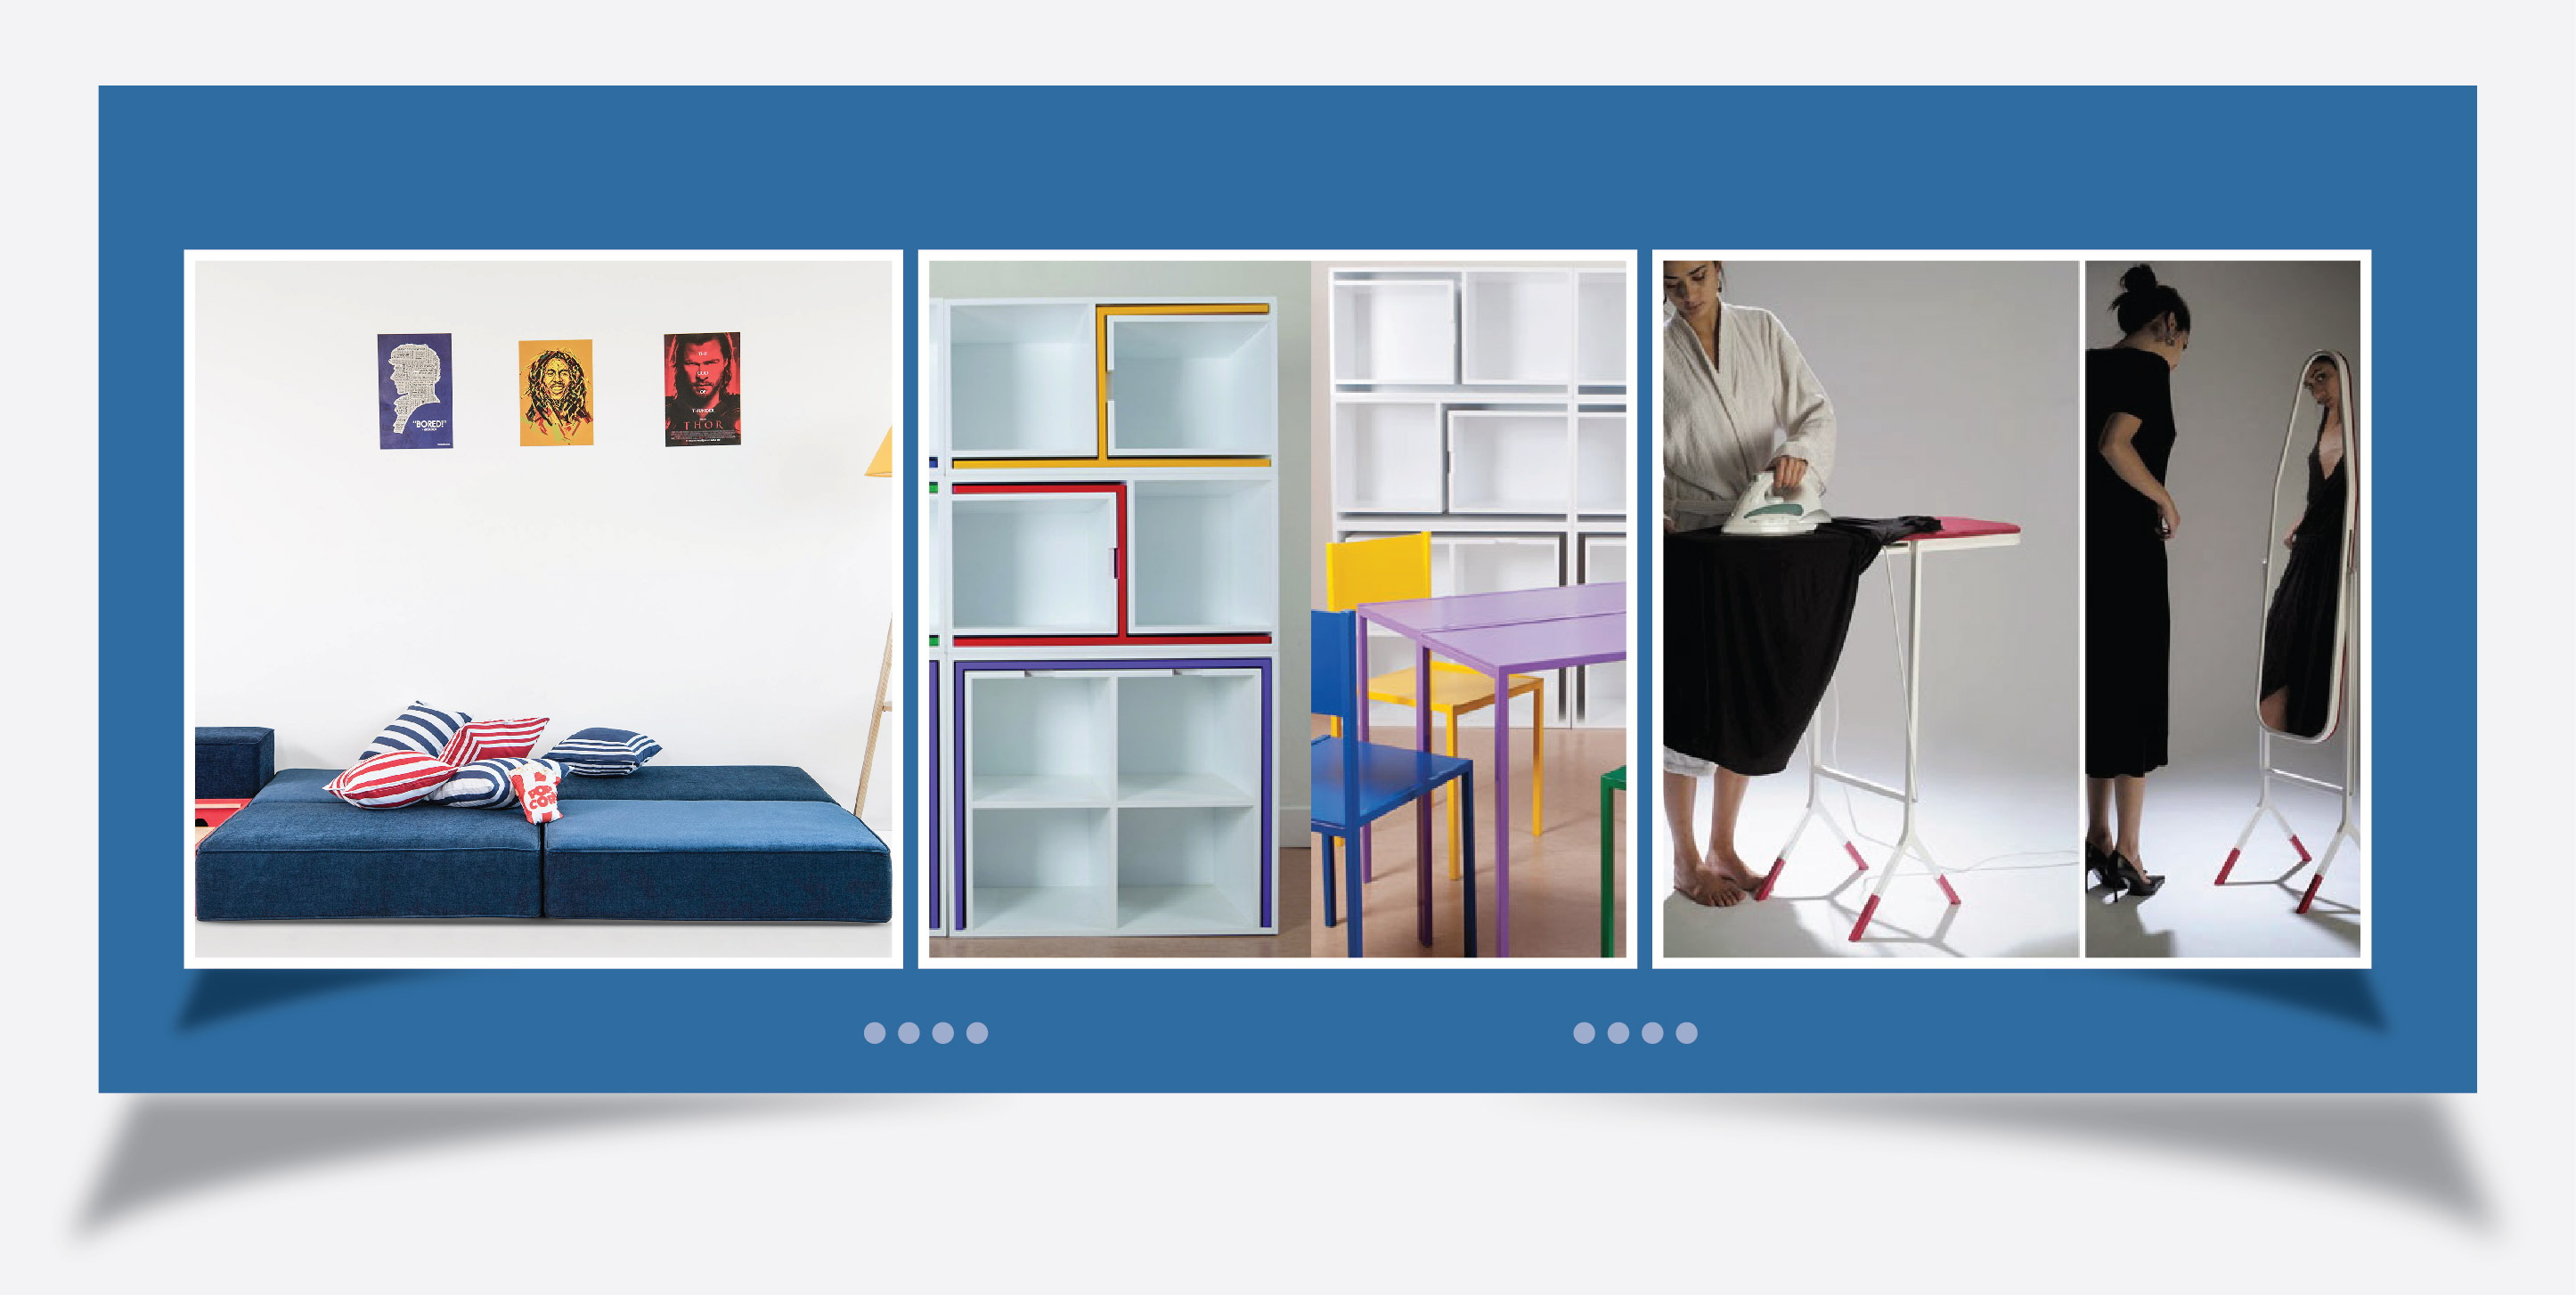 Multitasking Furniture for the Smart Home - That Feeling Called Home